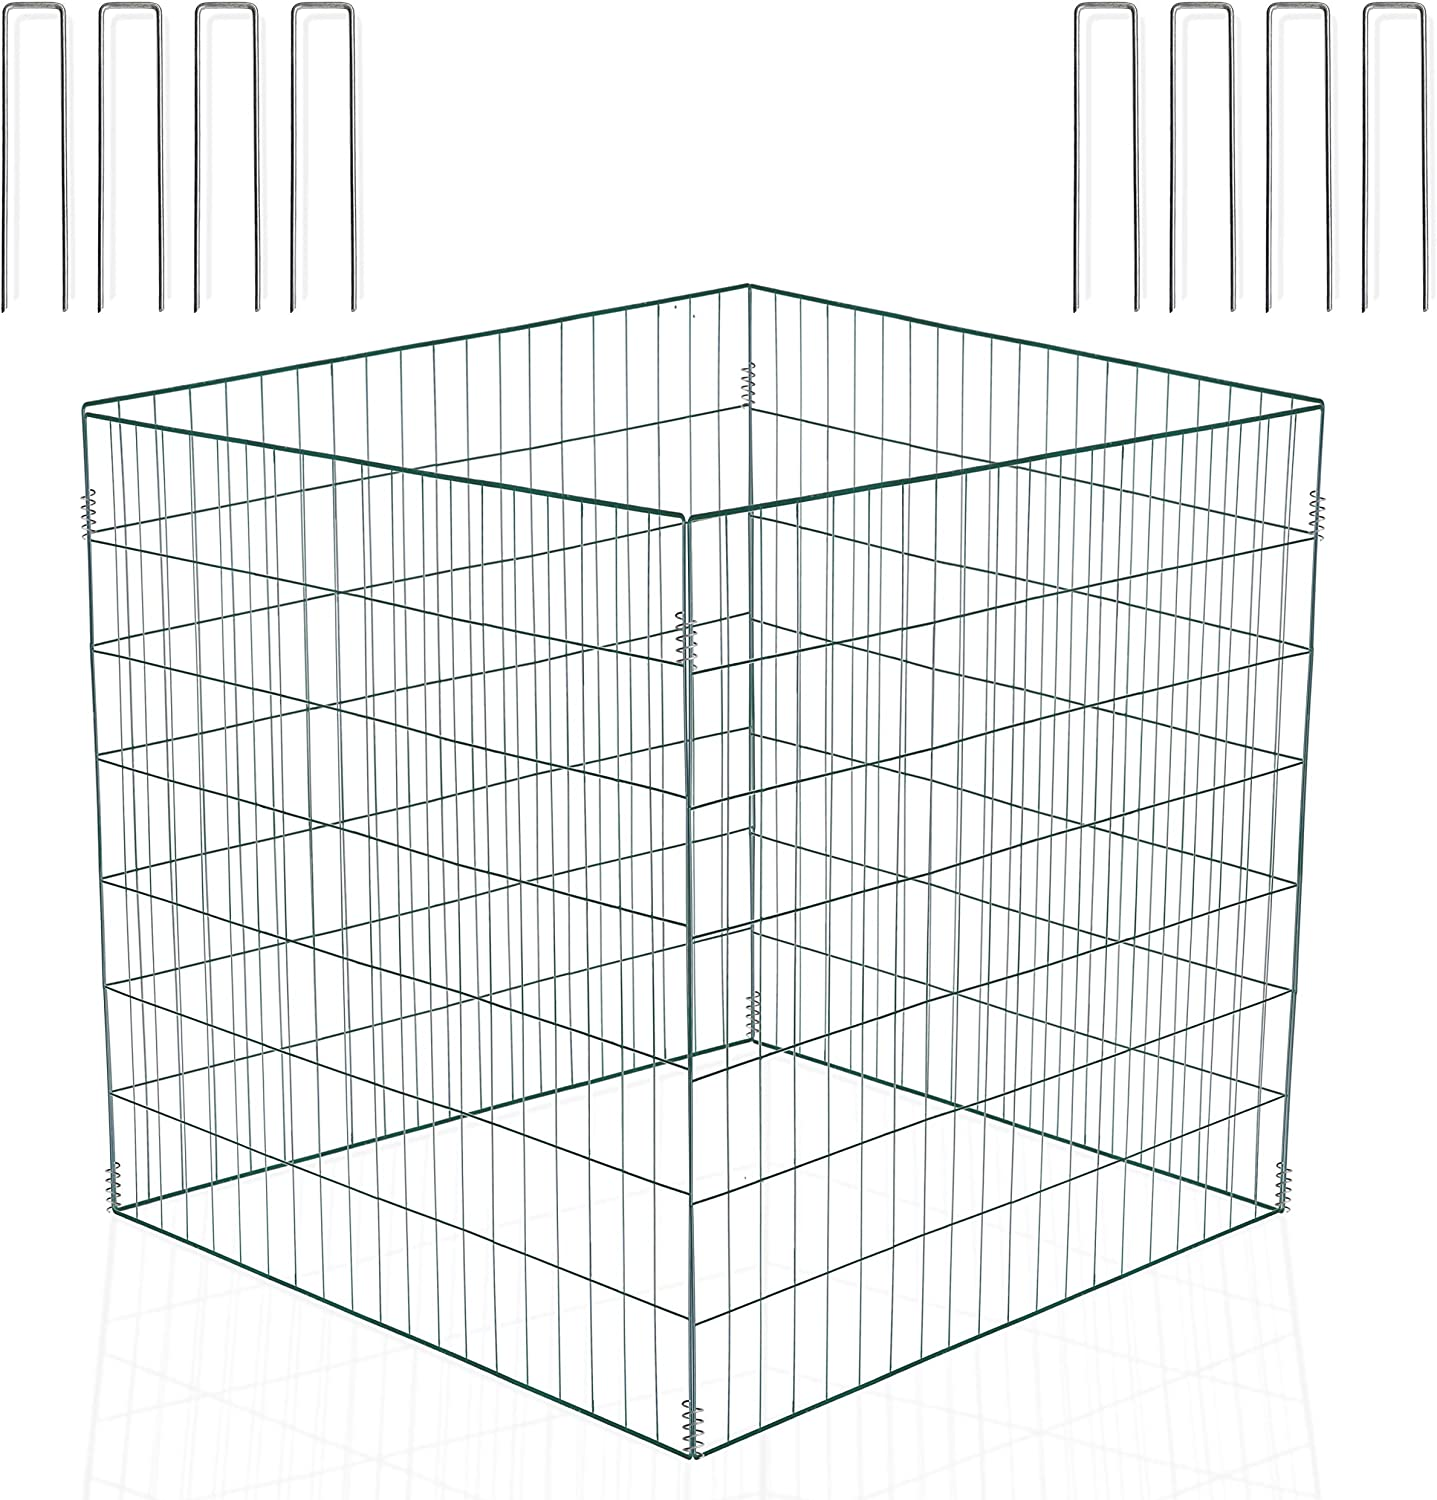 llevantics Wire Compost Bin 36x36x28 inch, Leaf Mesh Composter for Garden and Outdoors, Holds up to 150 Gallons, Durable Green Powder-Coated Steel, Foldable, with 8 U-Shaped Garden Ground Staples